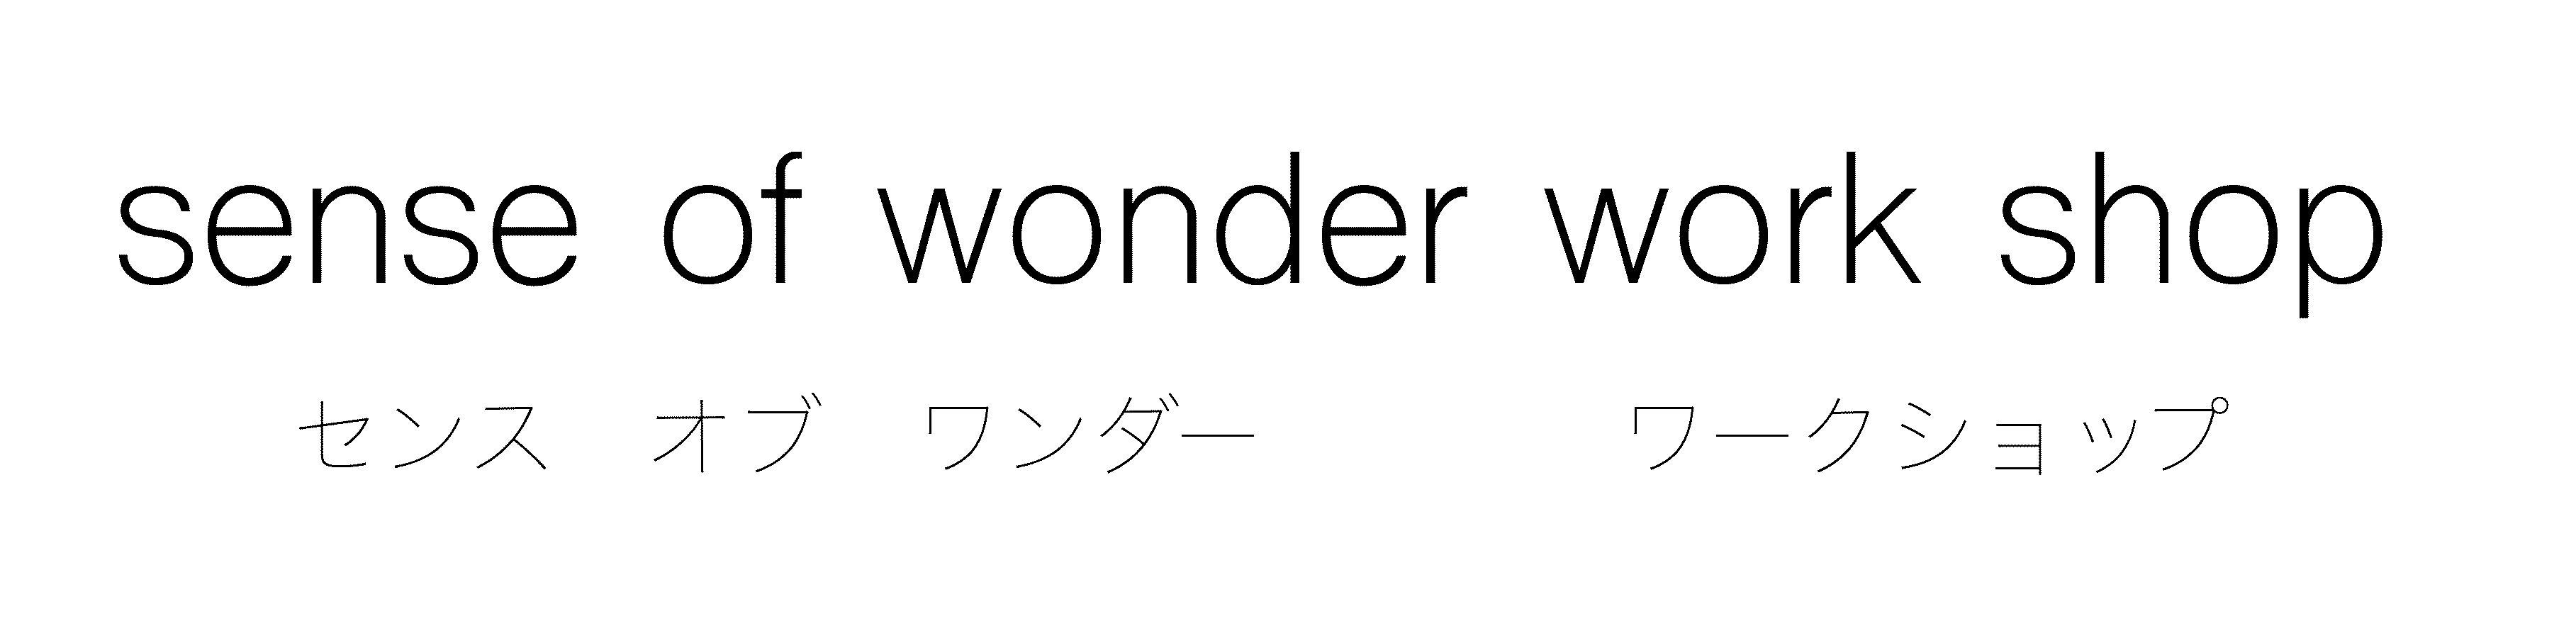 sense of wonder work shop  1 春の寄せ植え_c0112447_10195075.jpg